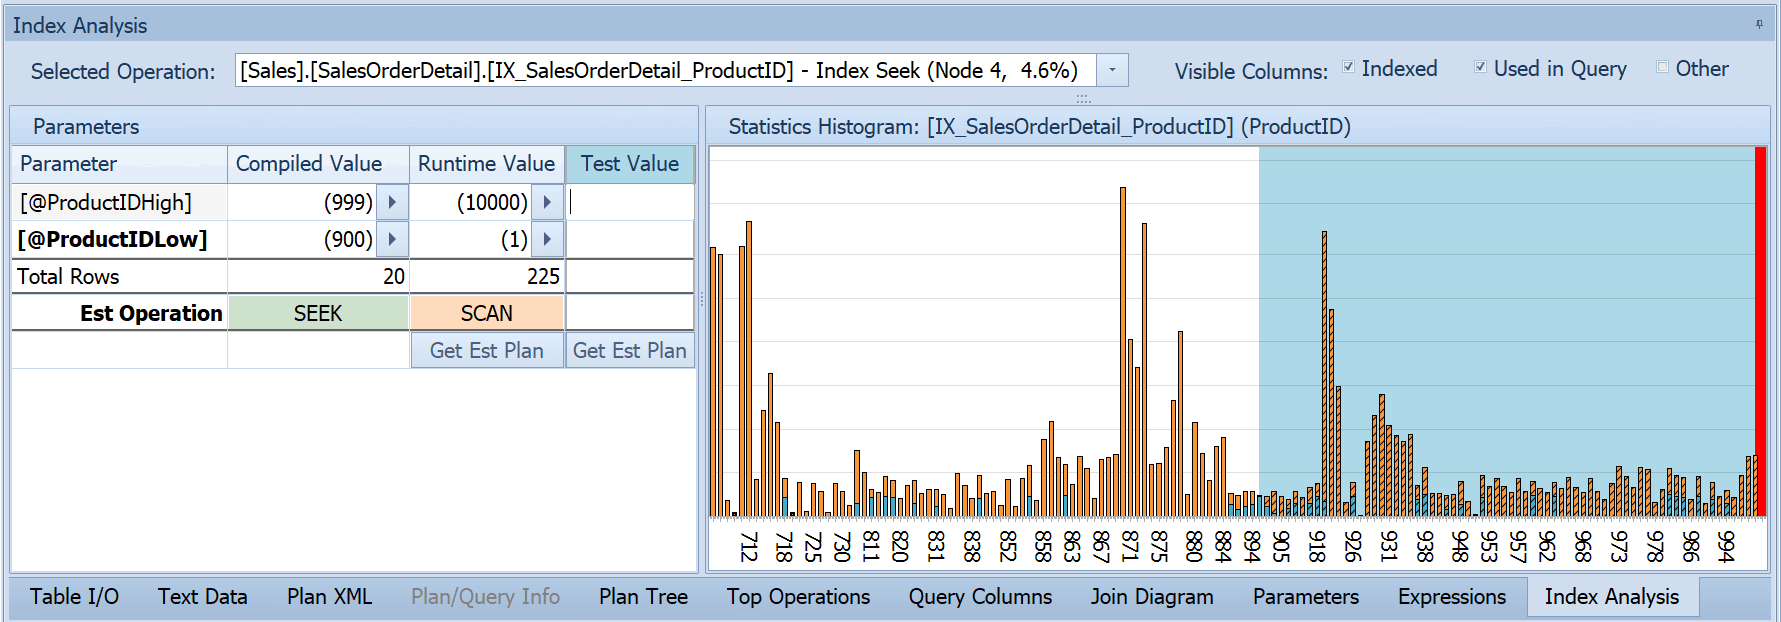 Statistics Analysis With Histogram Screenshot